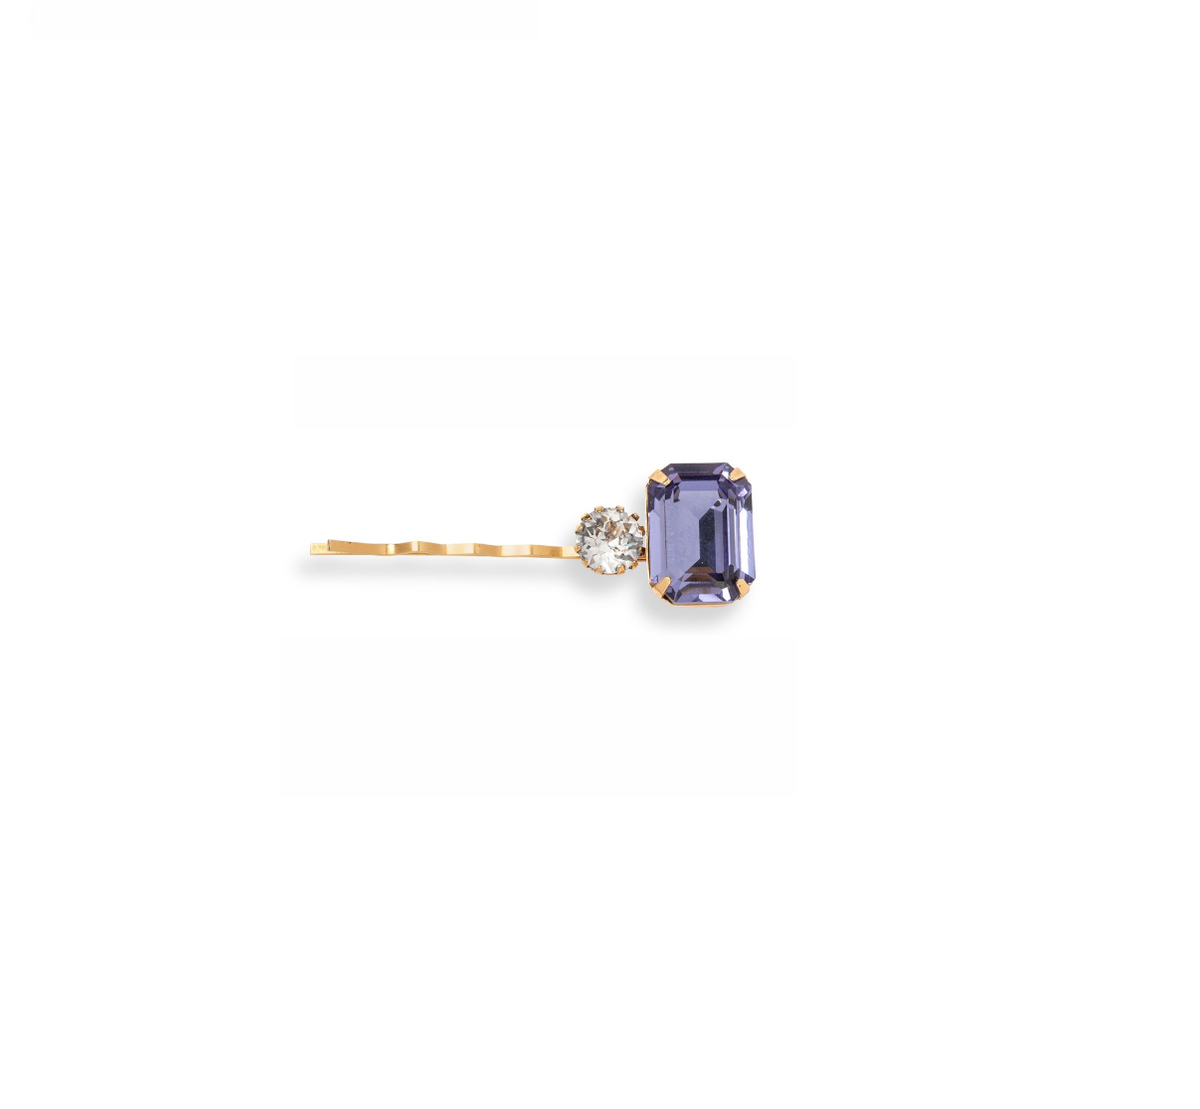 Image of Jennifer Behr Swarovski Crystal Bobby Pin (multiple colors)